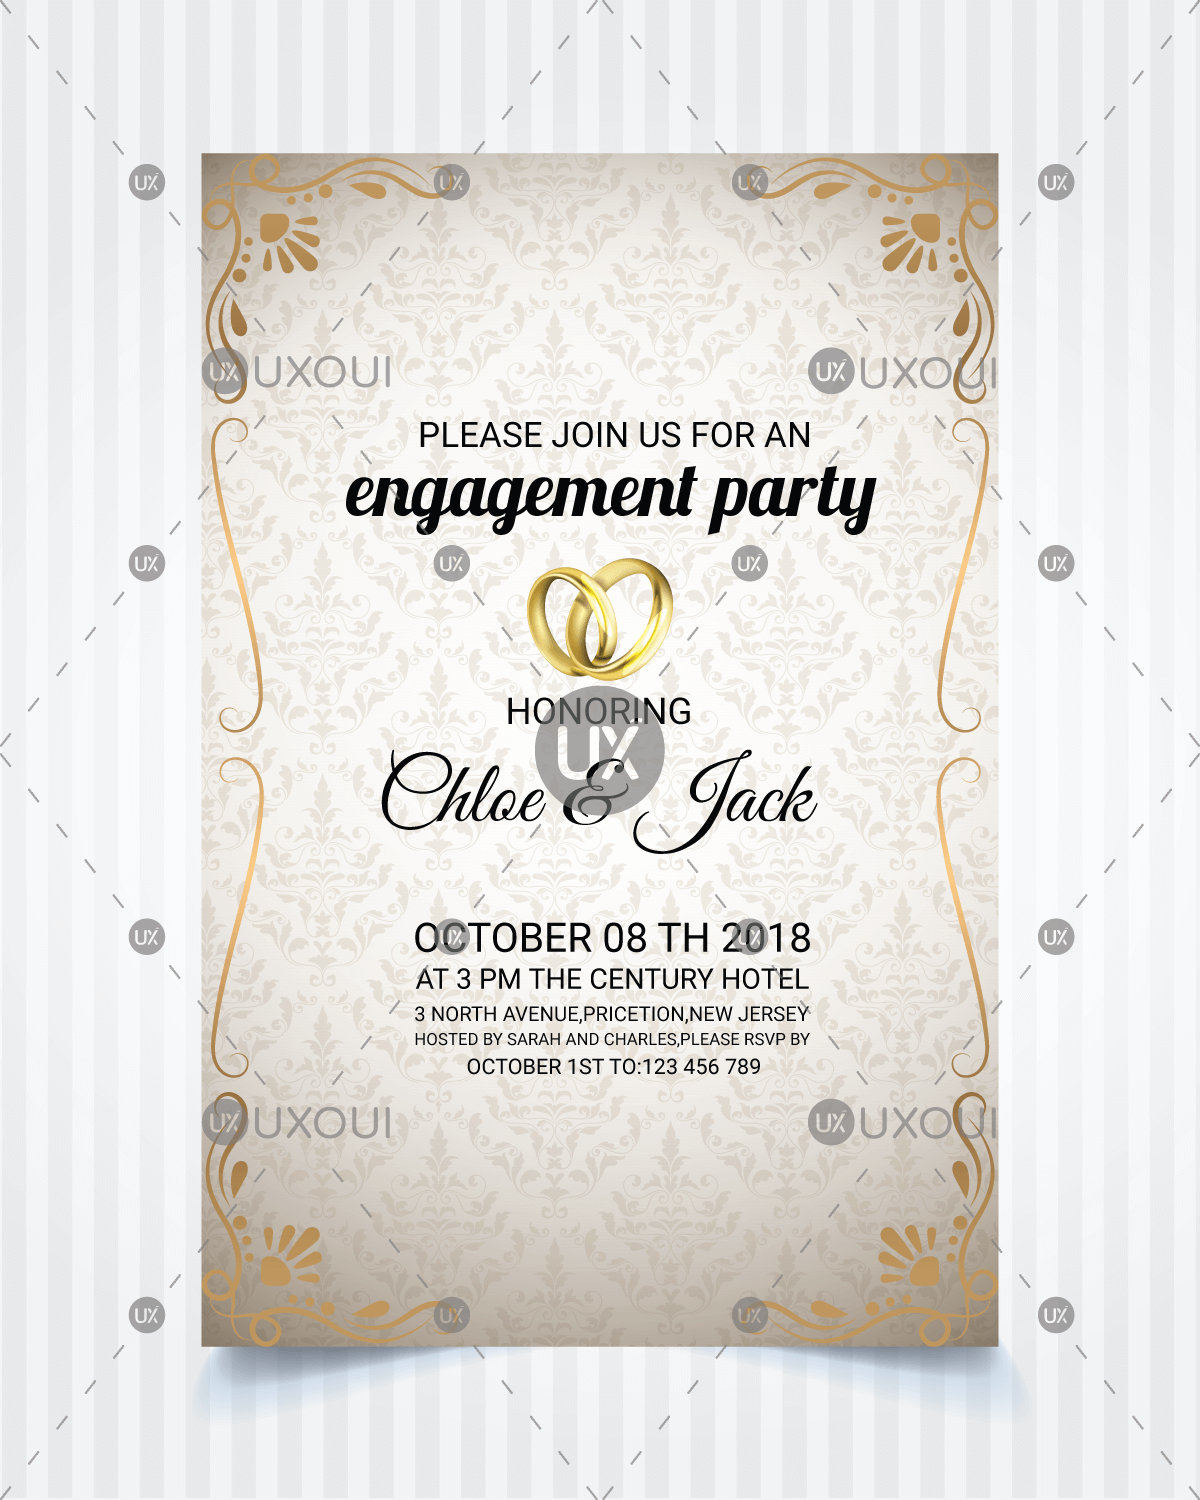 Vintage style wedding engagement party invitation card template ...